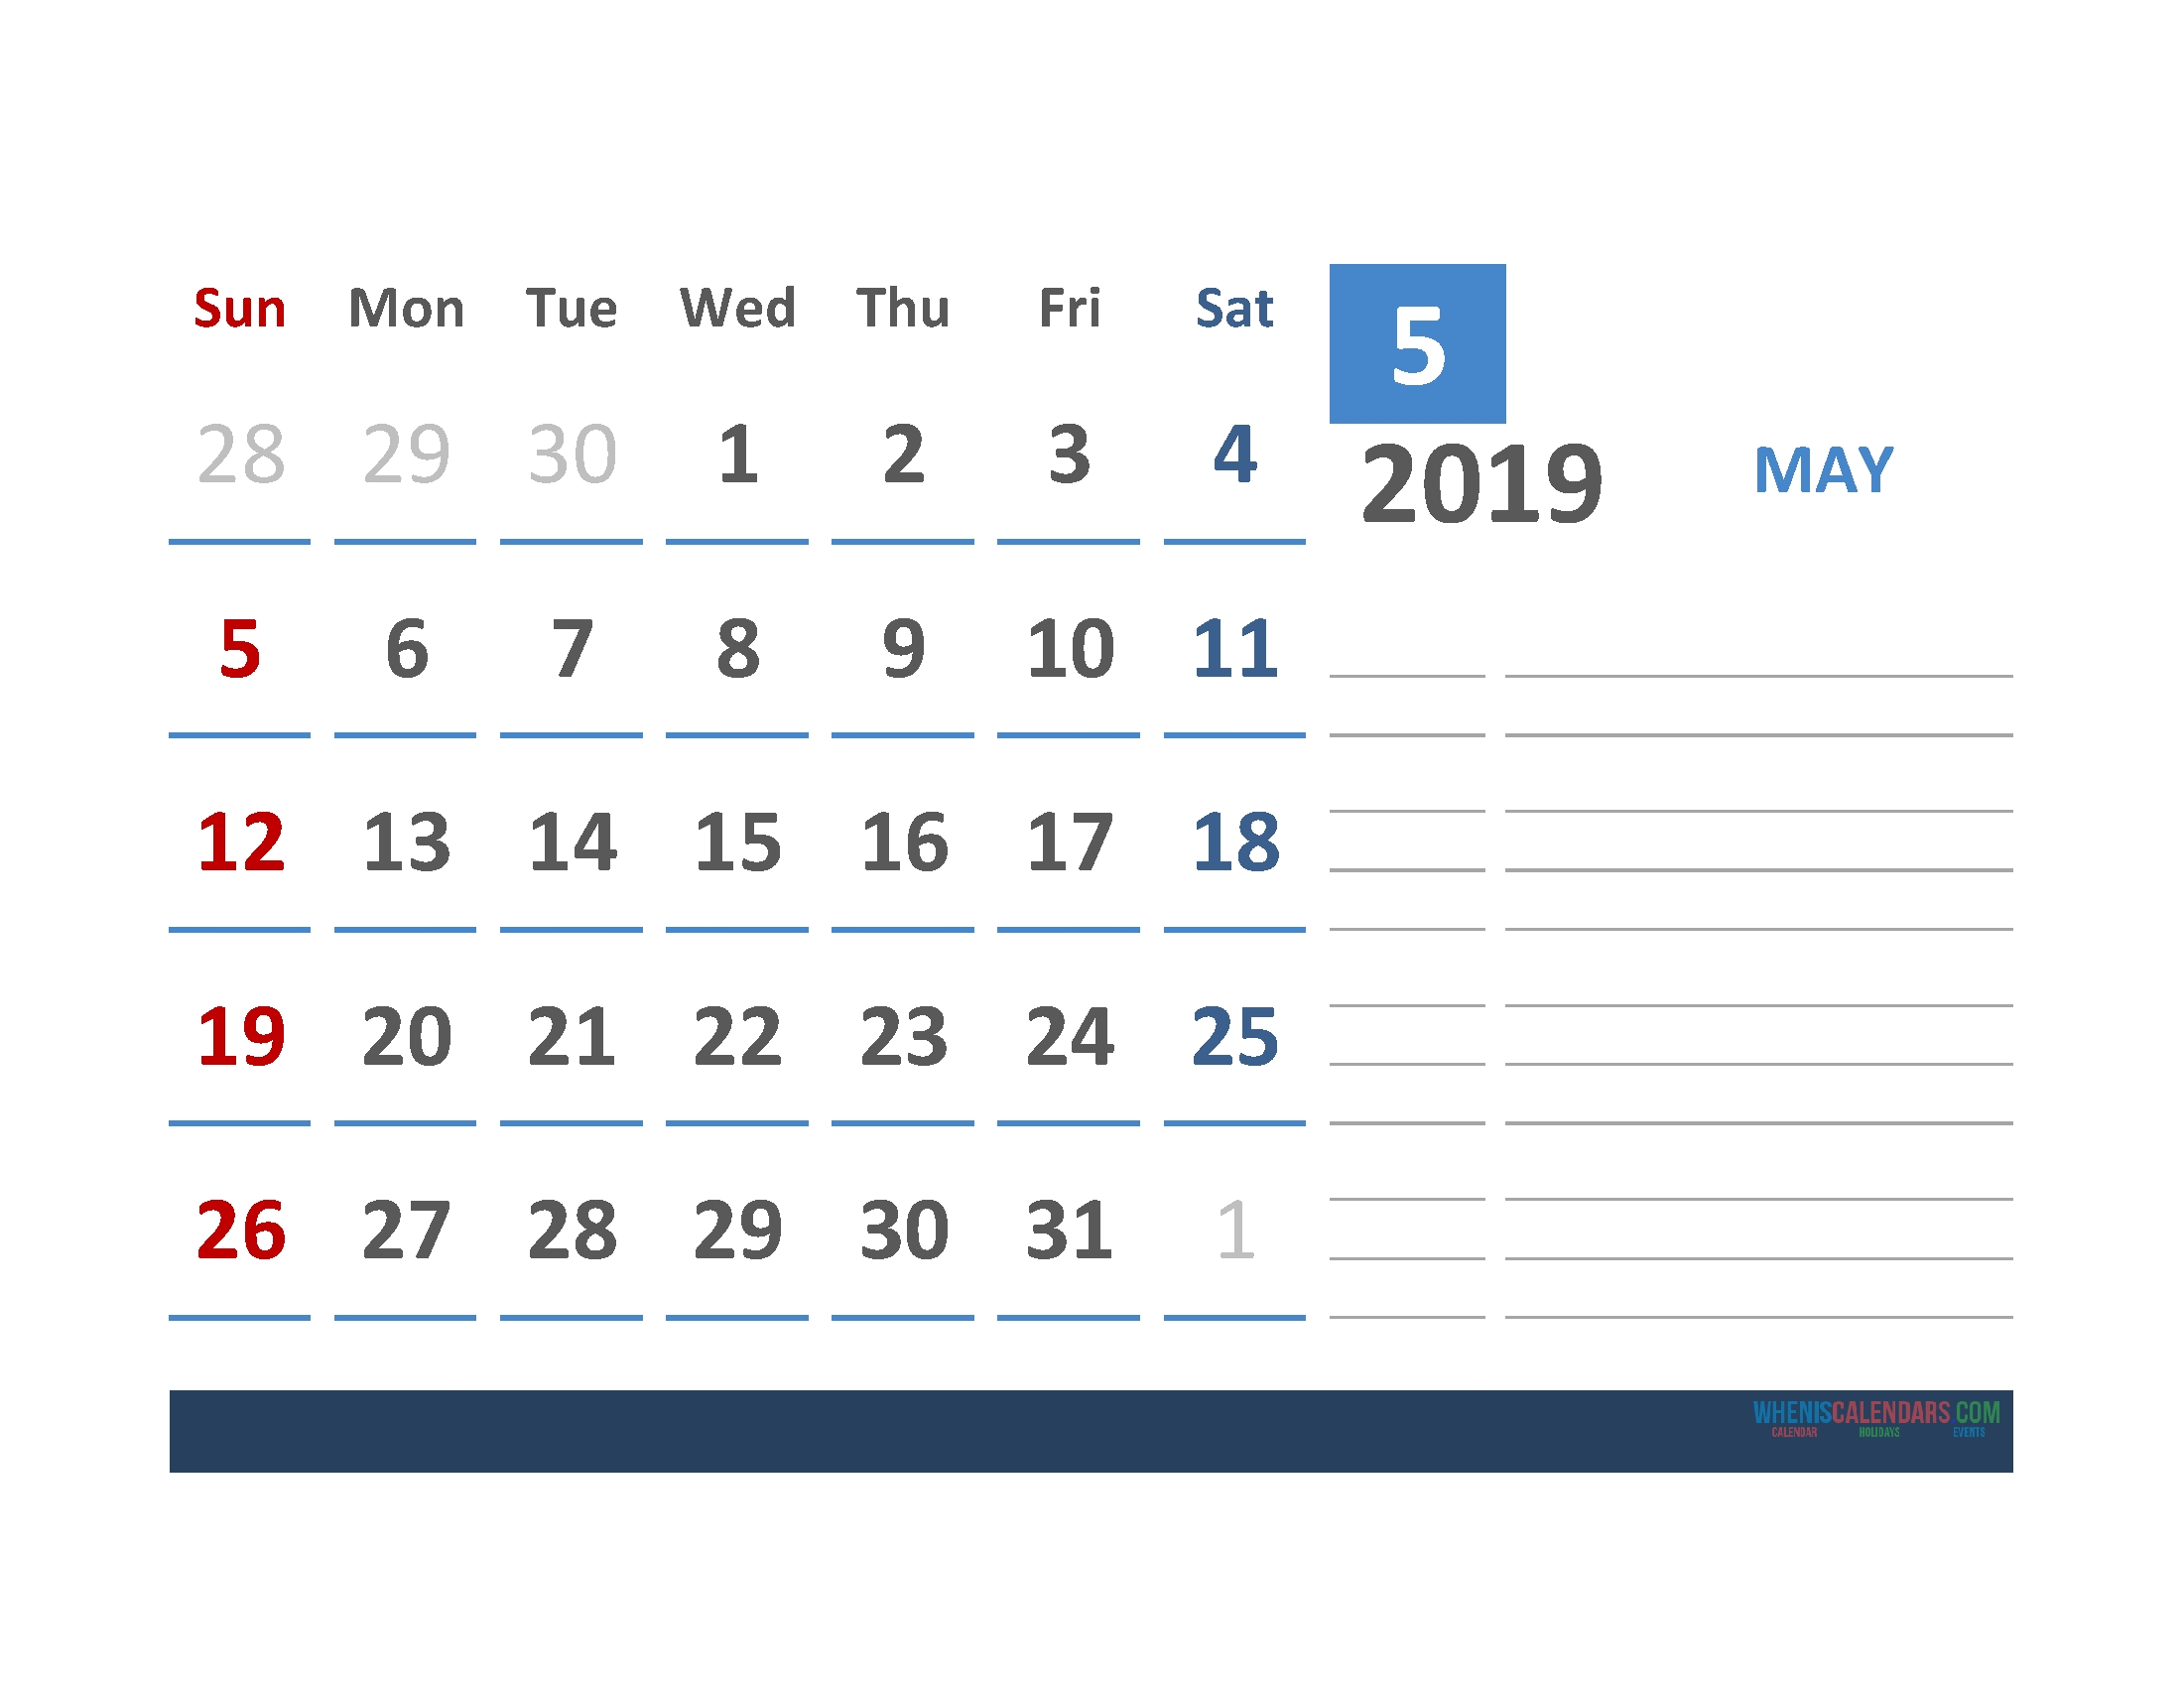 Free May 2019 Calendar Template With Space For Notes | Free Calendar Template With Room For Notes